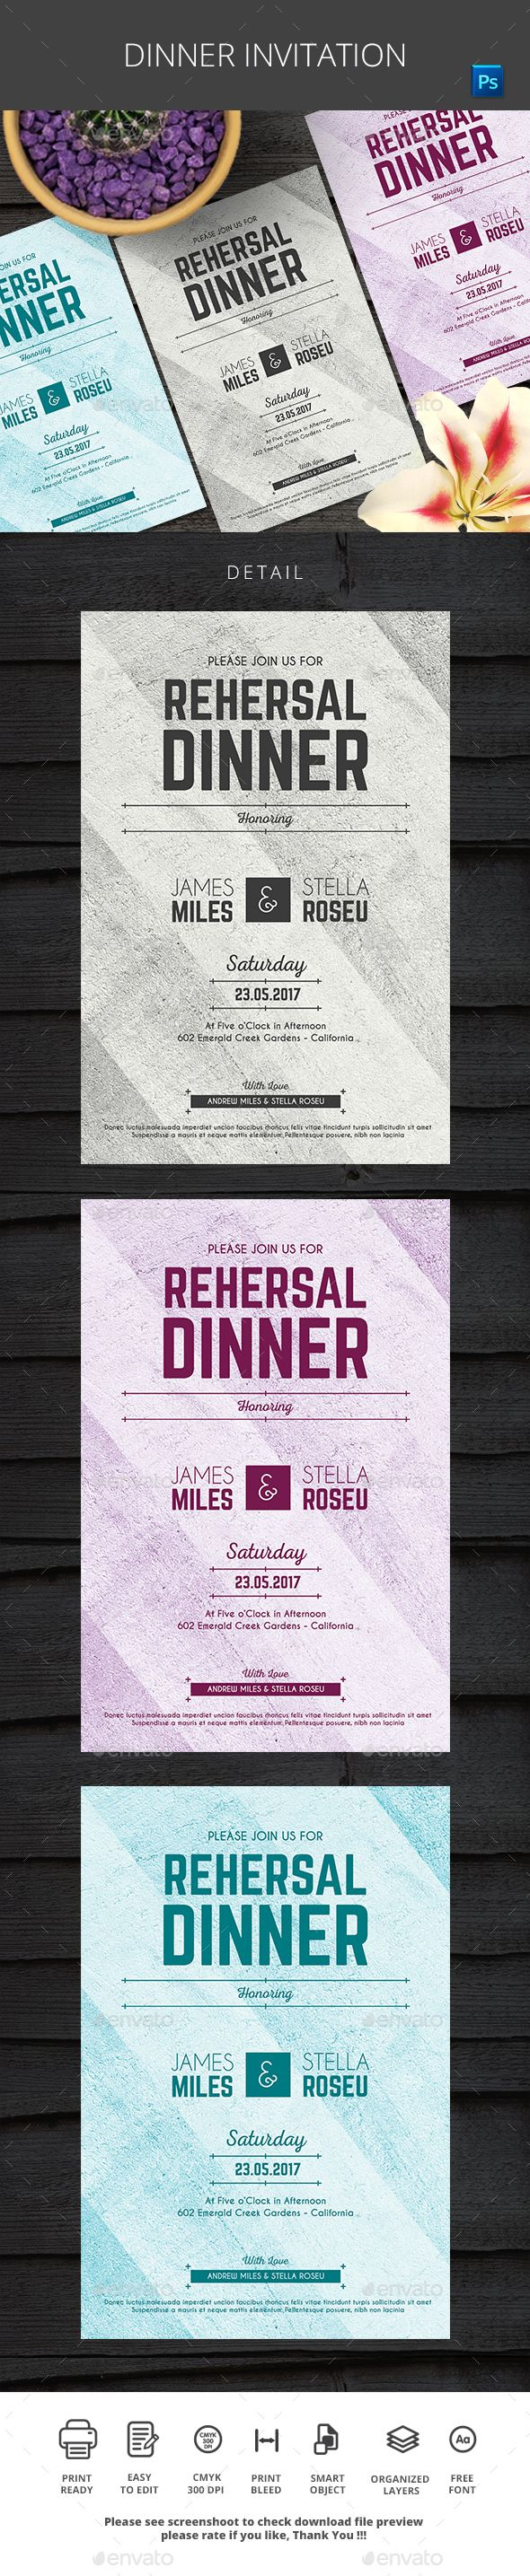 business event invitation templates%0A Dinner Invitation  Dinner Invitation TemplateDinner InvitationsInvitation